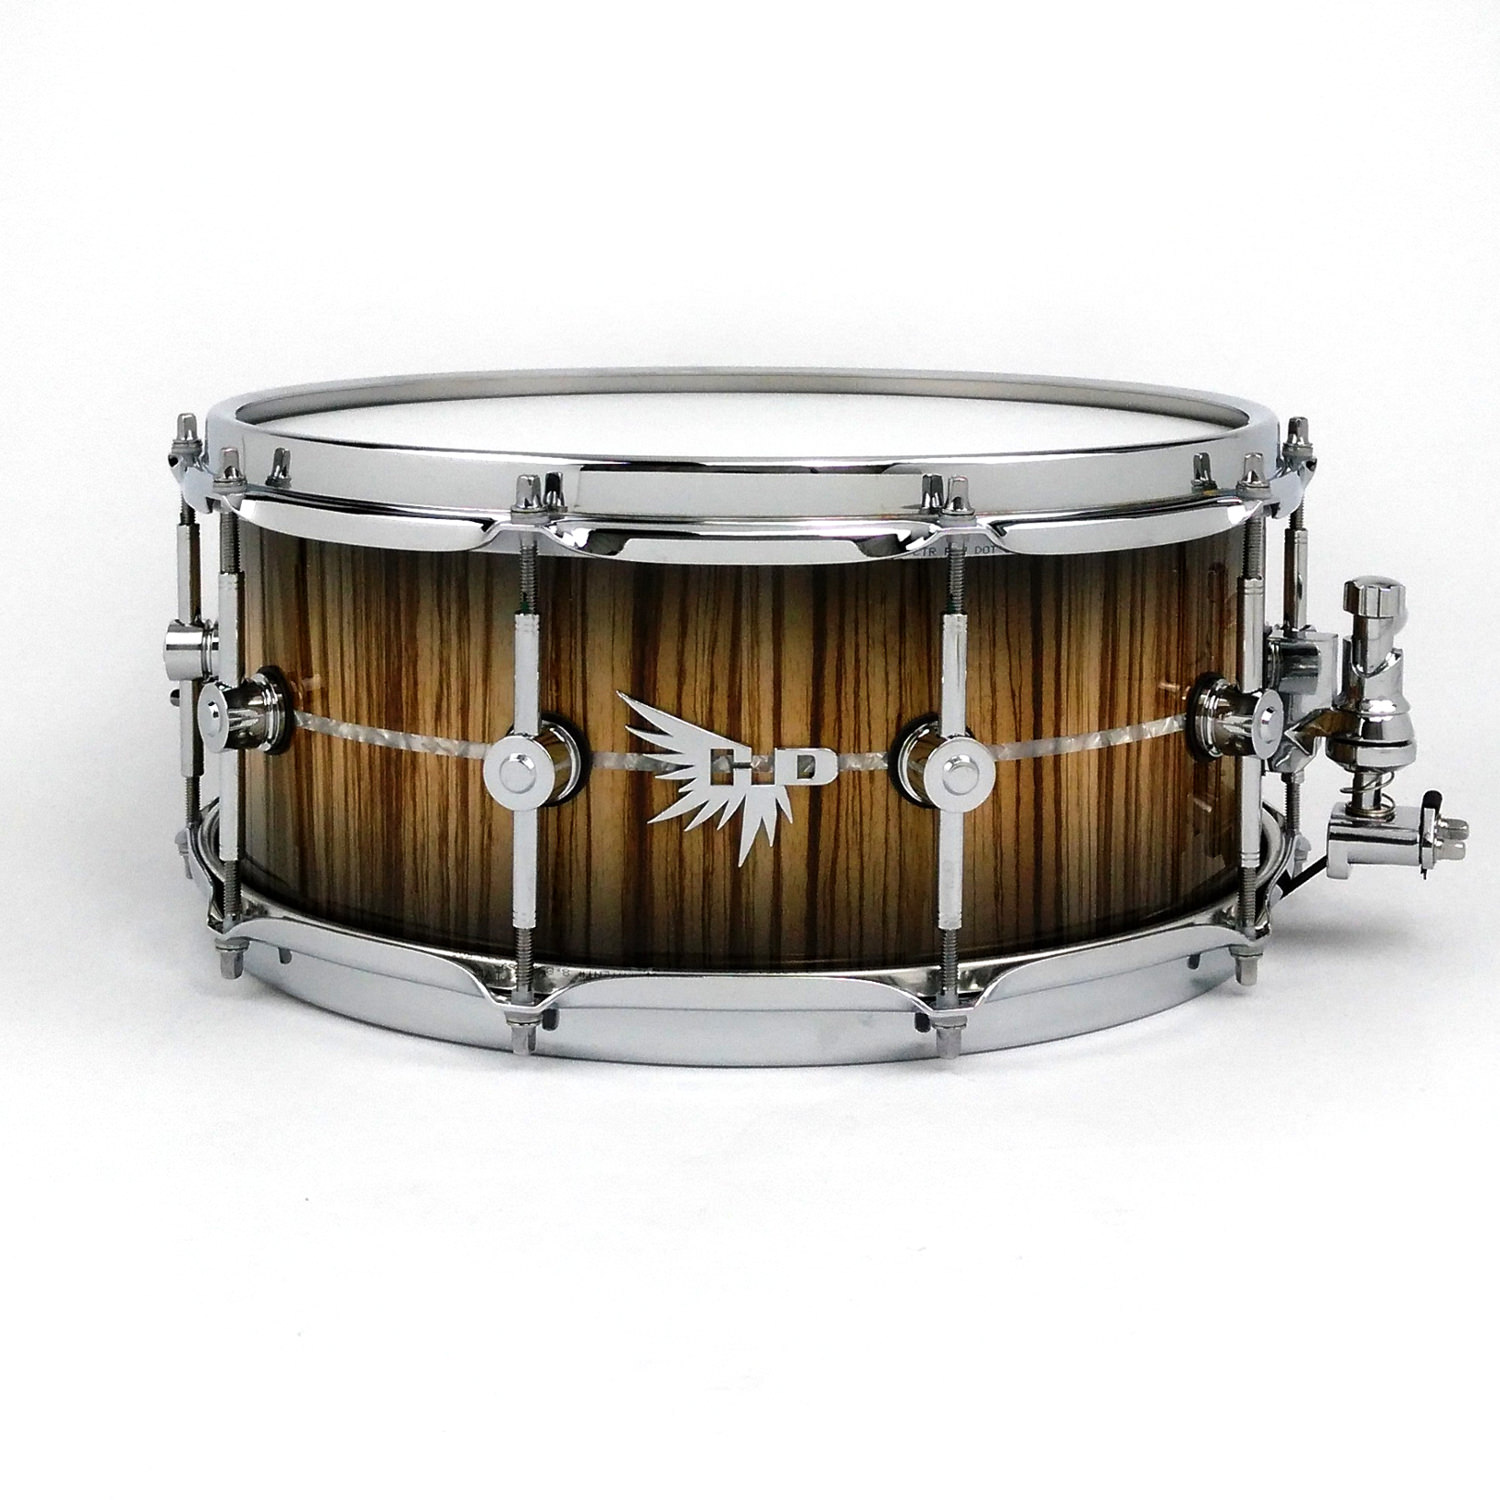 Zebrawood snare drum Hendrix Drums Craviotto DW Inlay HD Stave White Marine Pearl